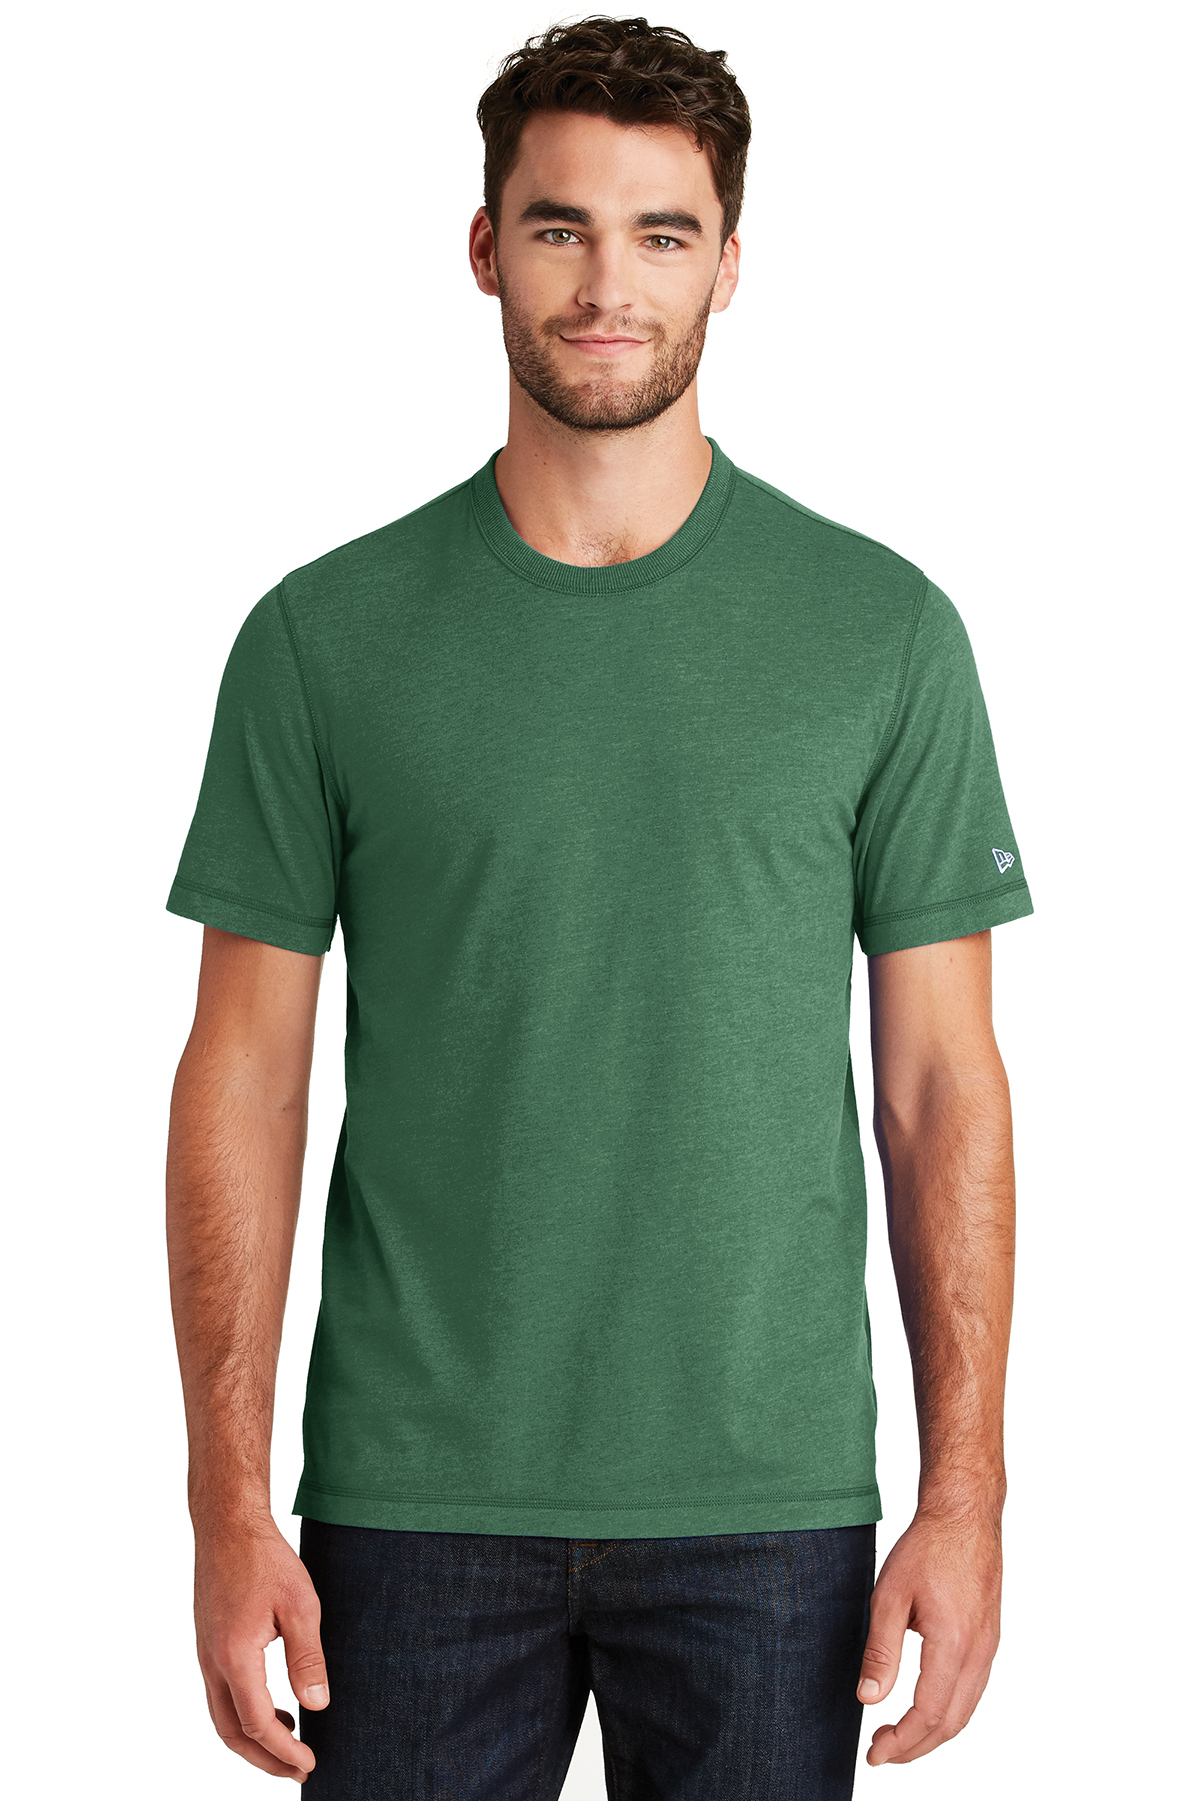 New Era NEA120 - Men's Suede Cotton Crew Tee